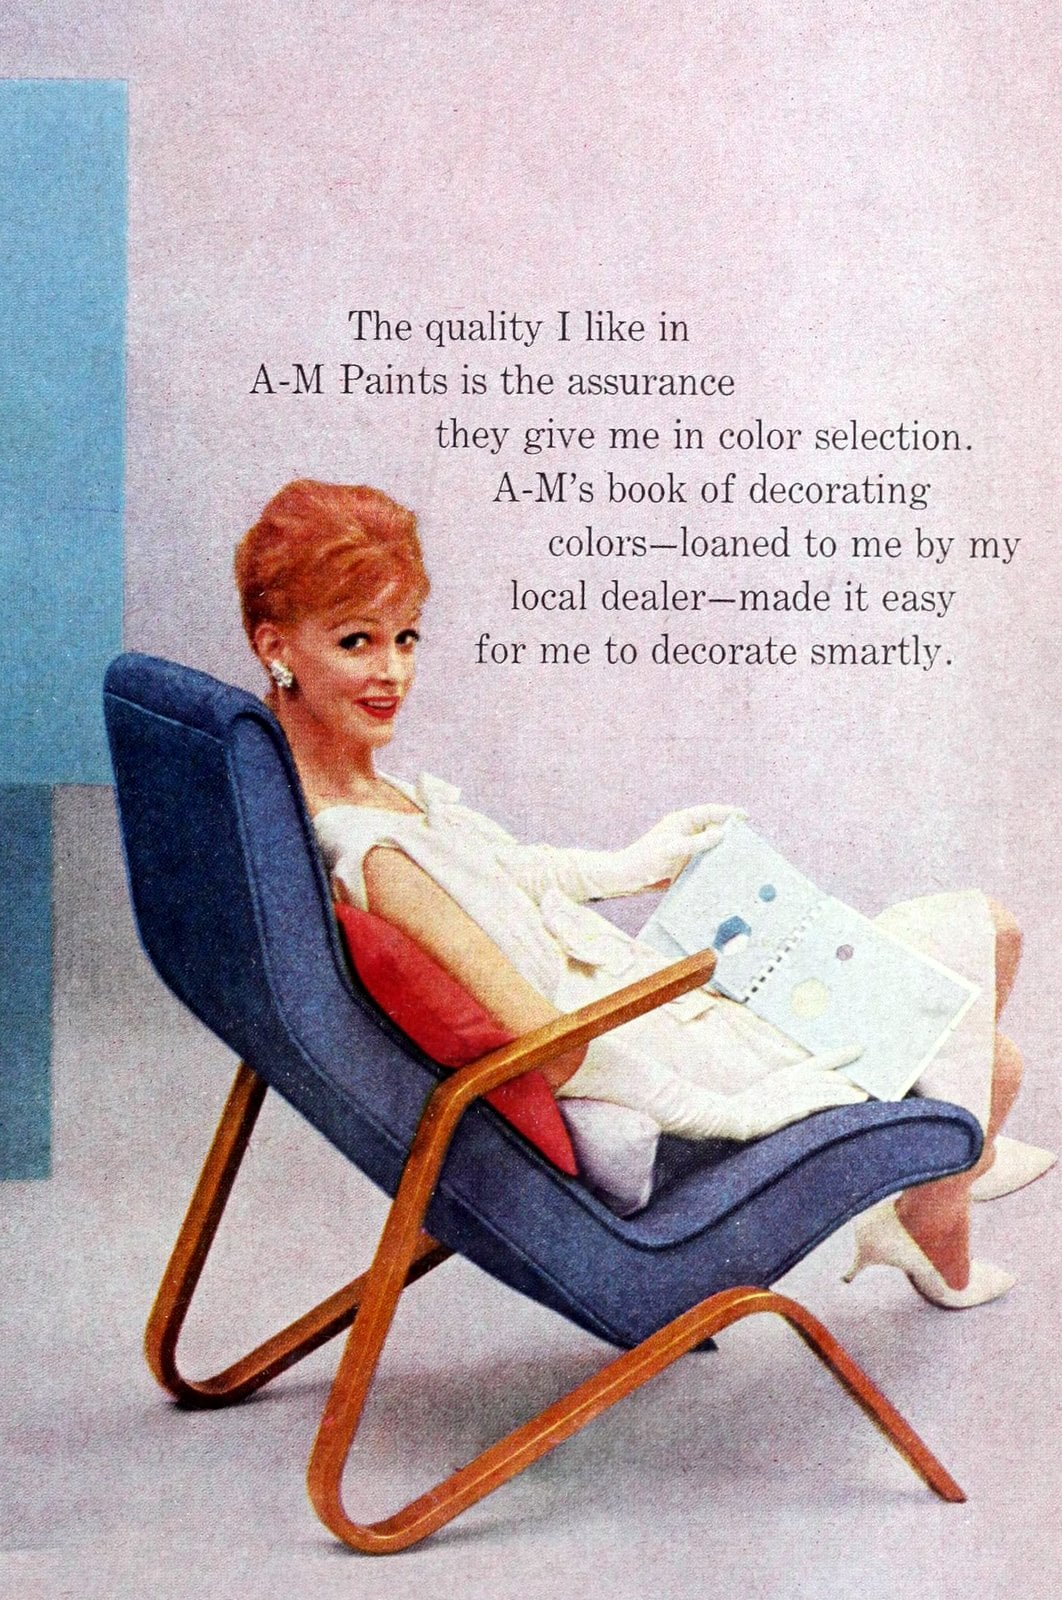 Vintage blue and wood-effect semi-recliner chair (1961)